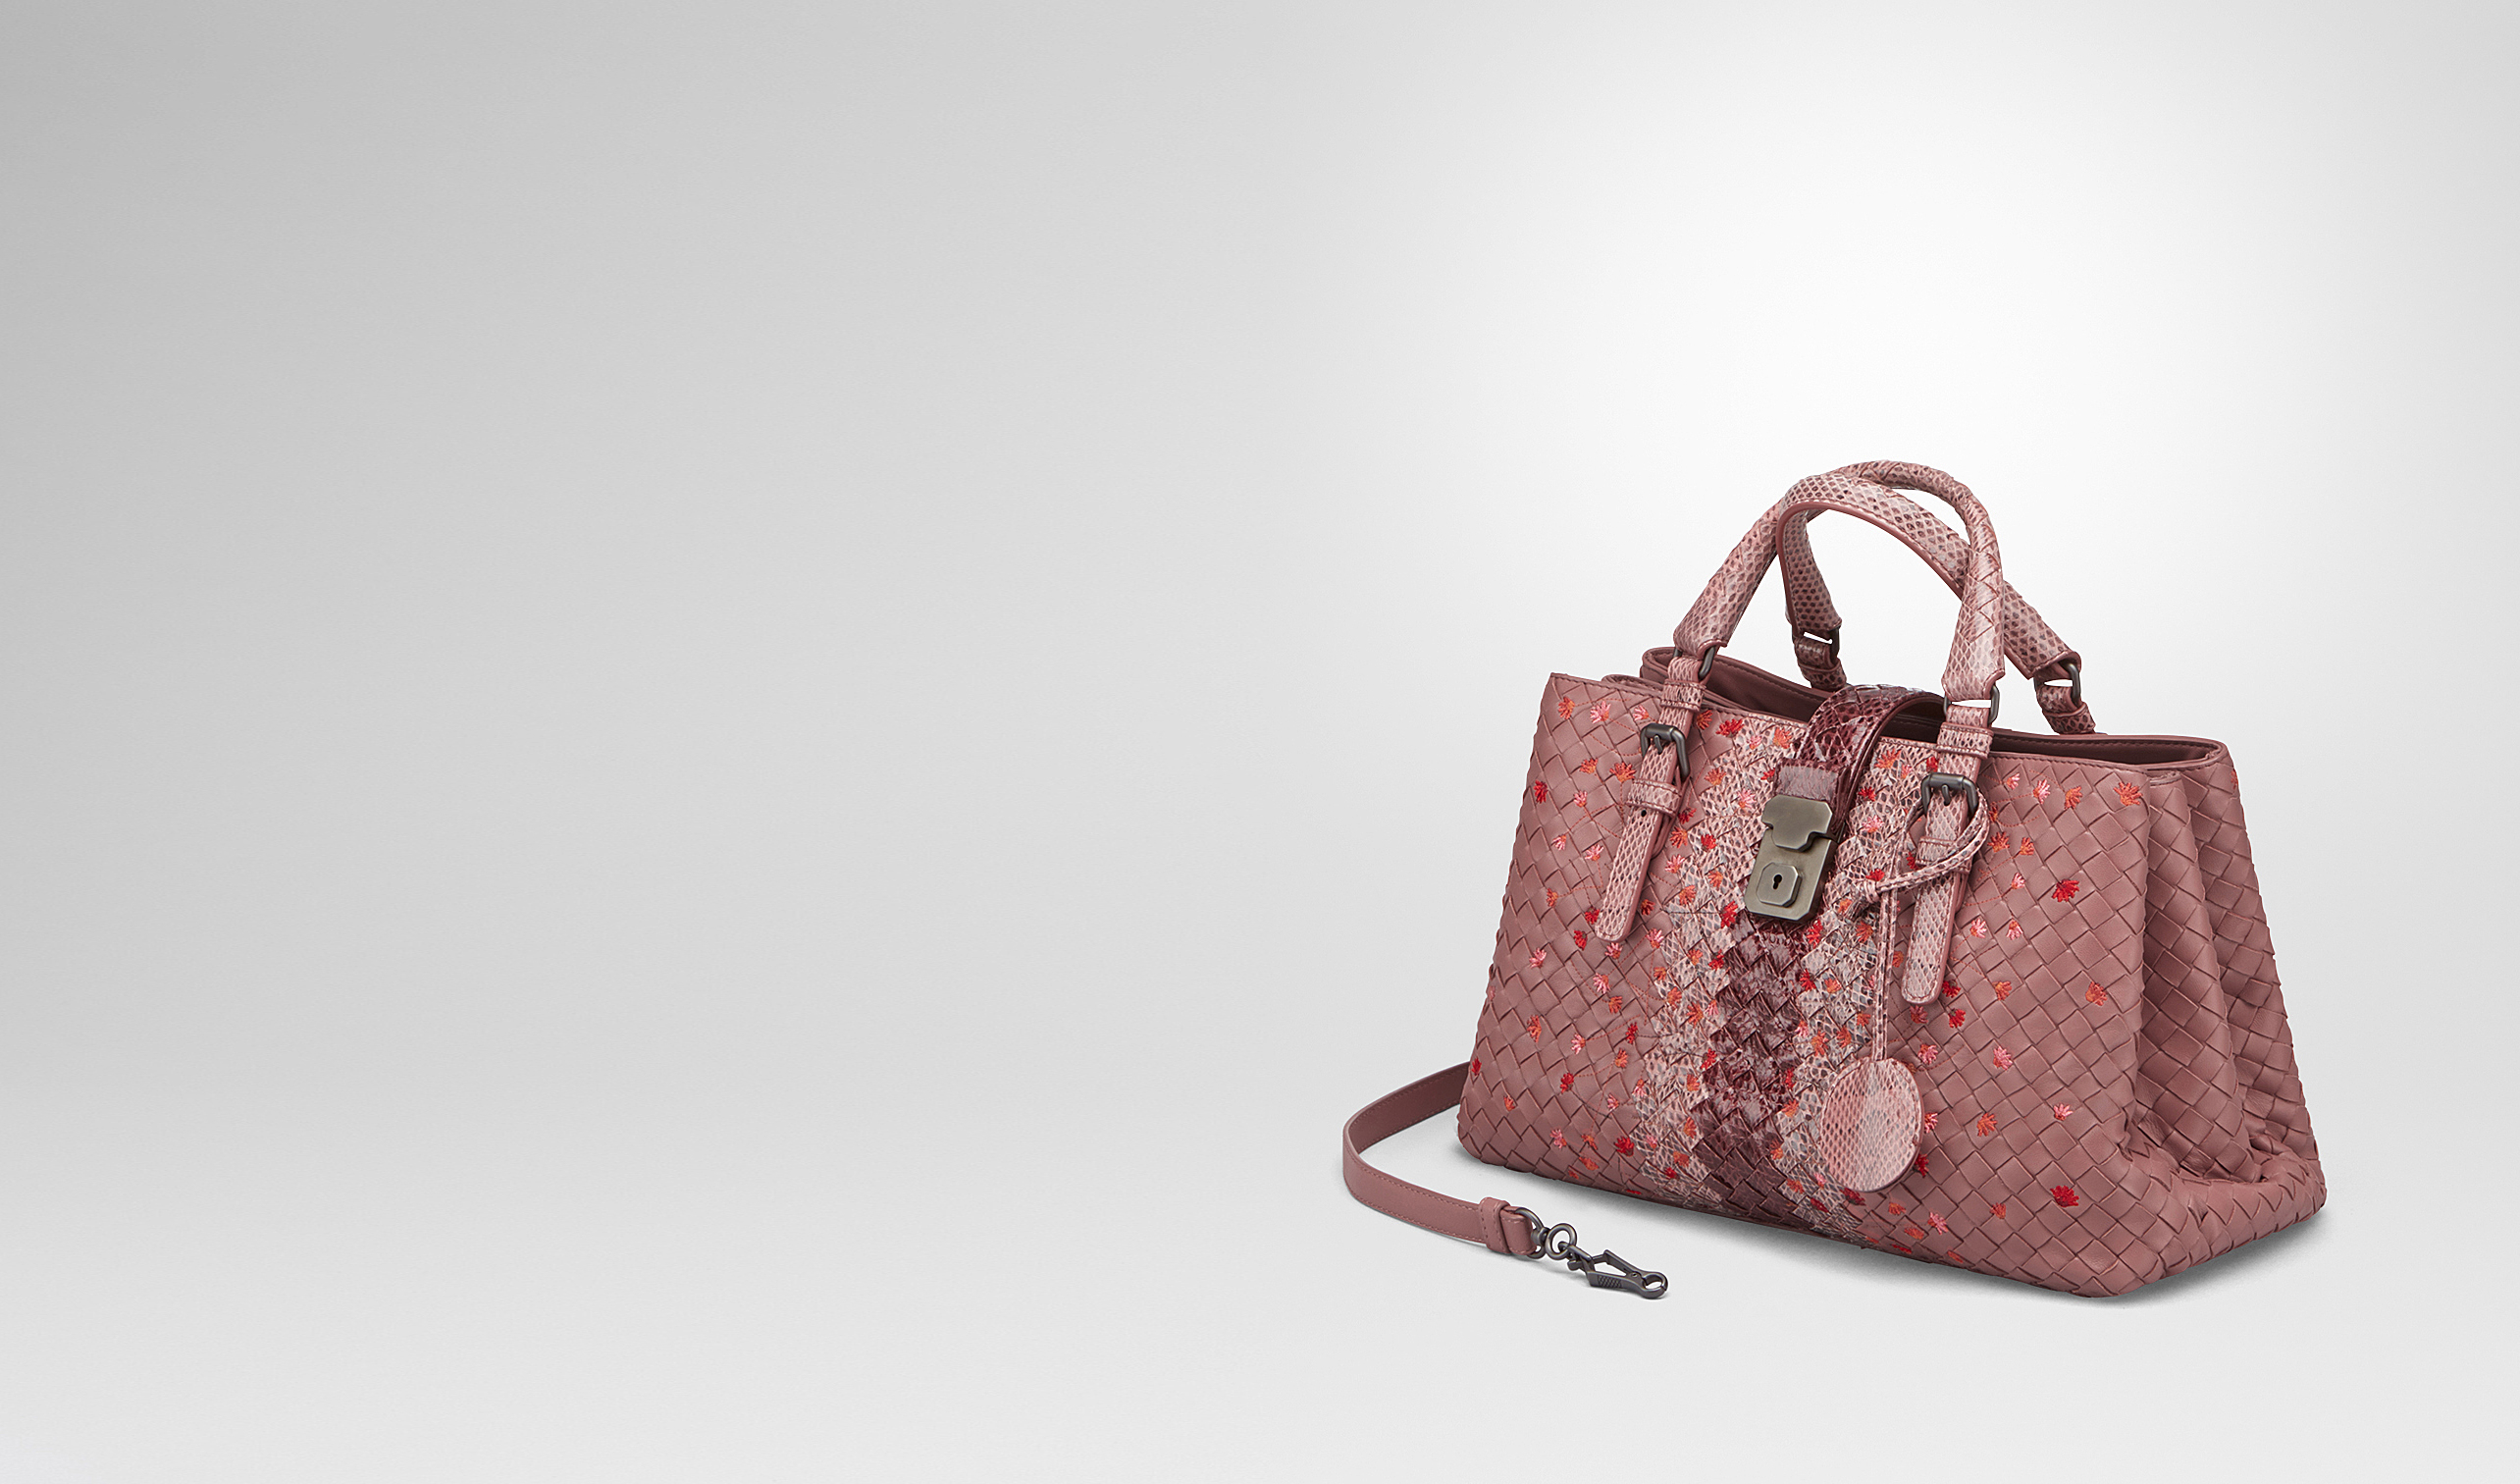 BOTTEGA VENETA Top Handle Bag D SMALL ROMA BAG IN DUSTY ROSE EMBROIDERED NAPPA LEATHER, AYERS DETAILS pl